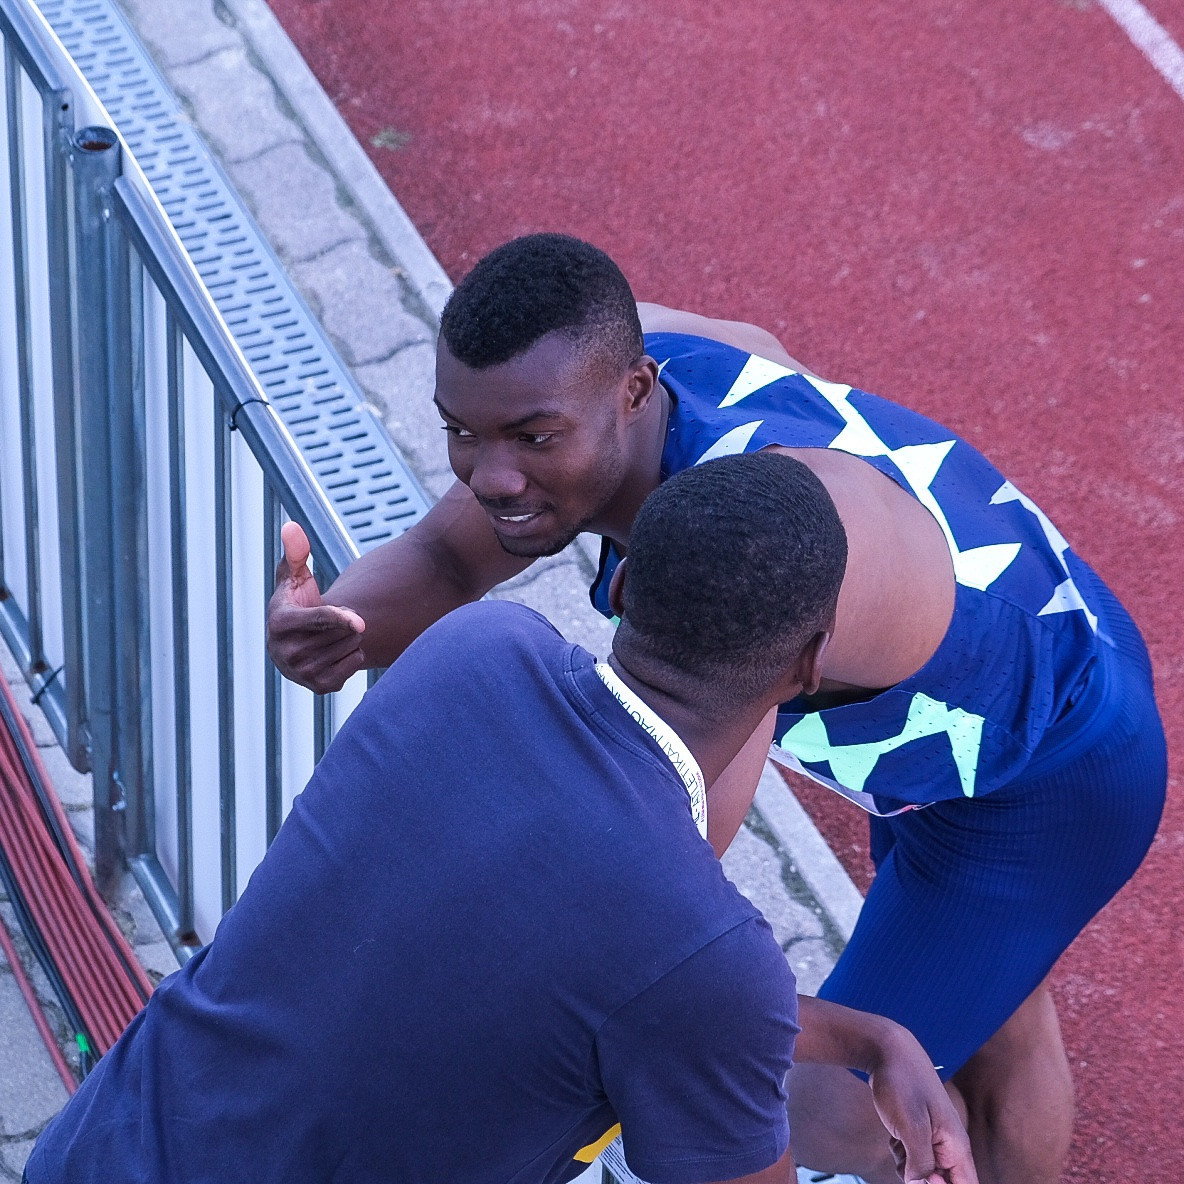 Zango sets 2020 world best of 17.43m to beat Olympic and world champion Taylor in Hungary